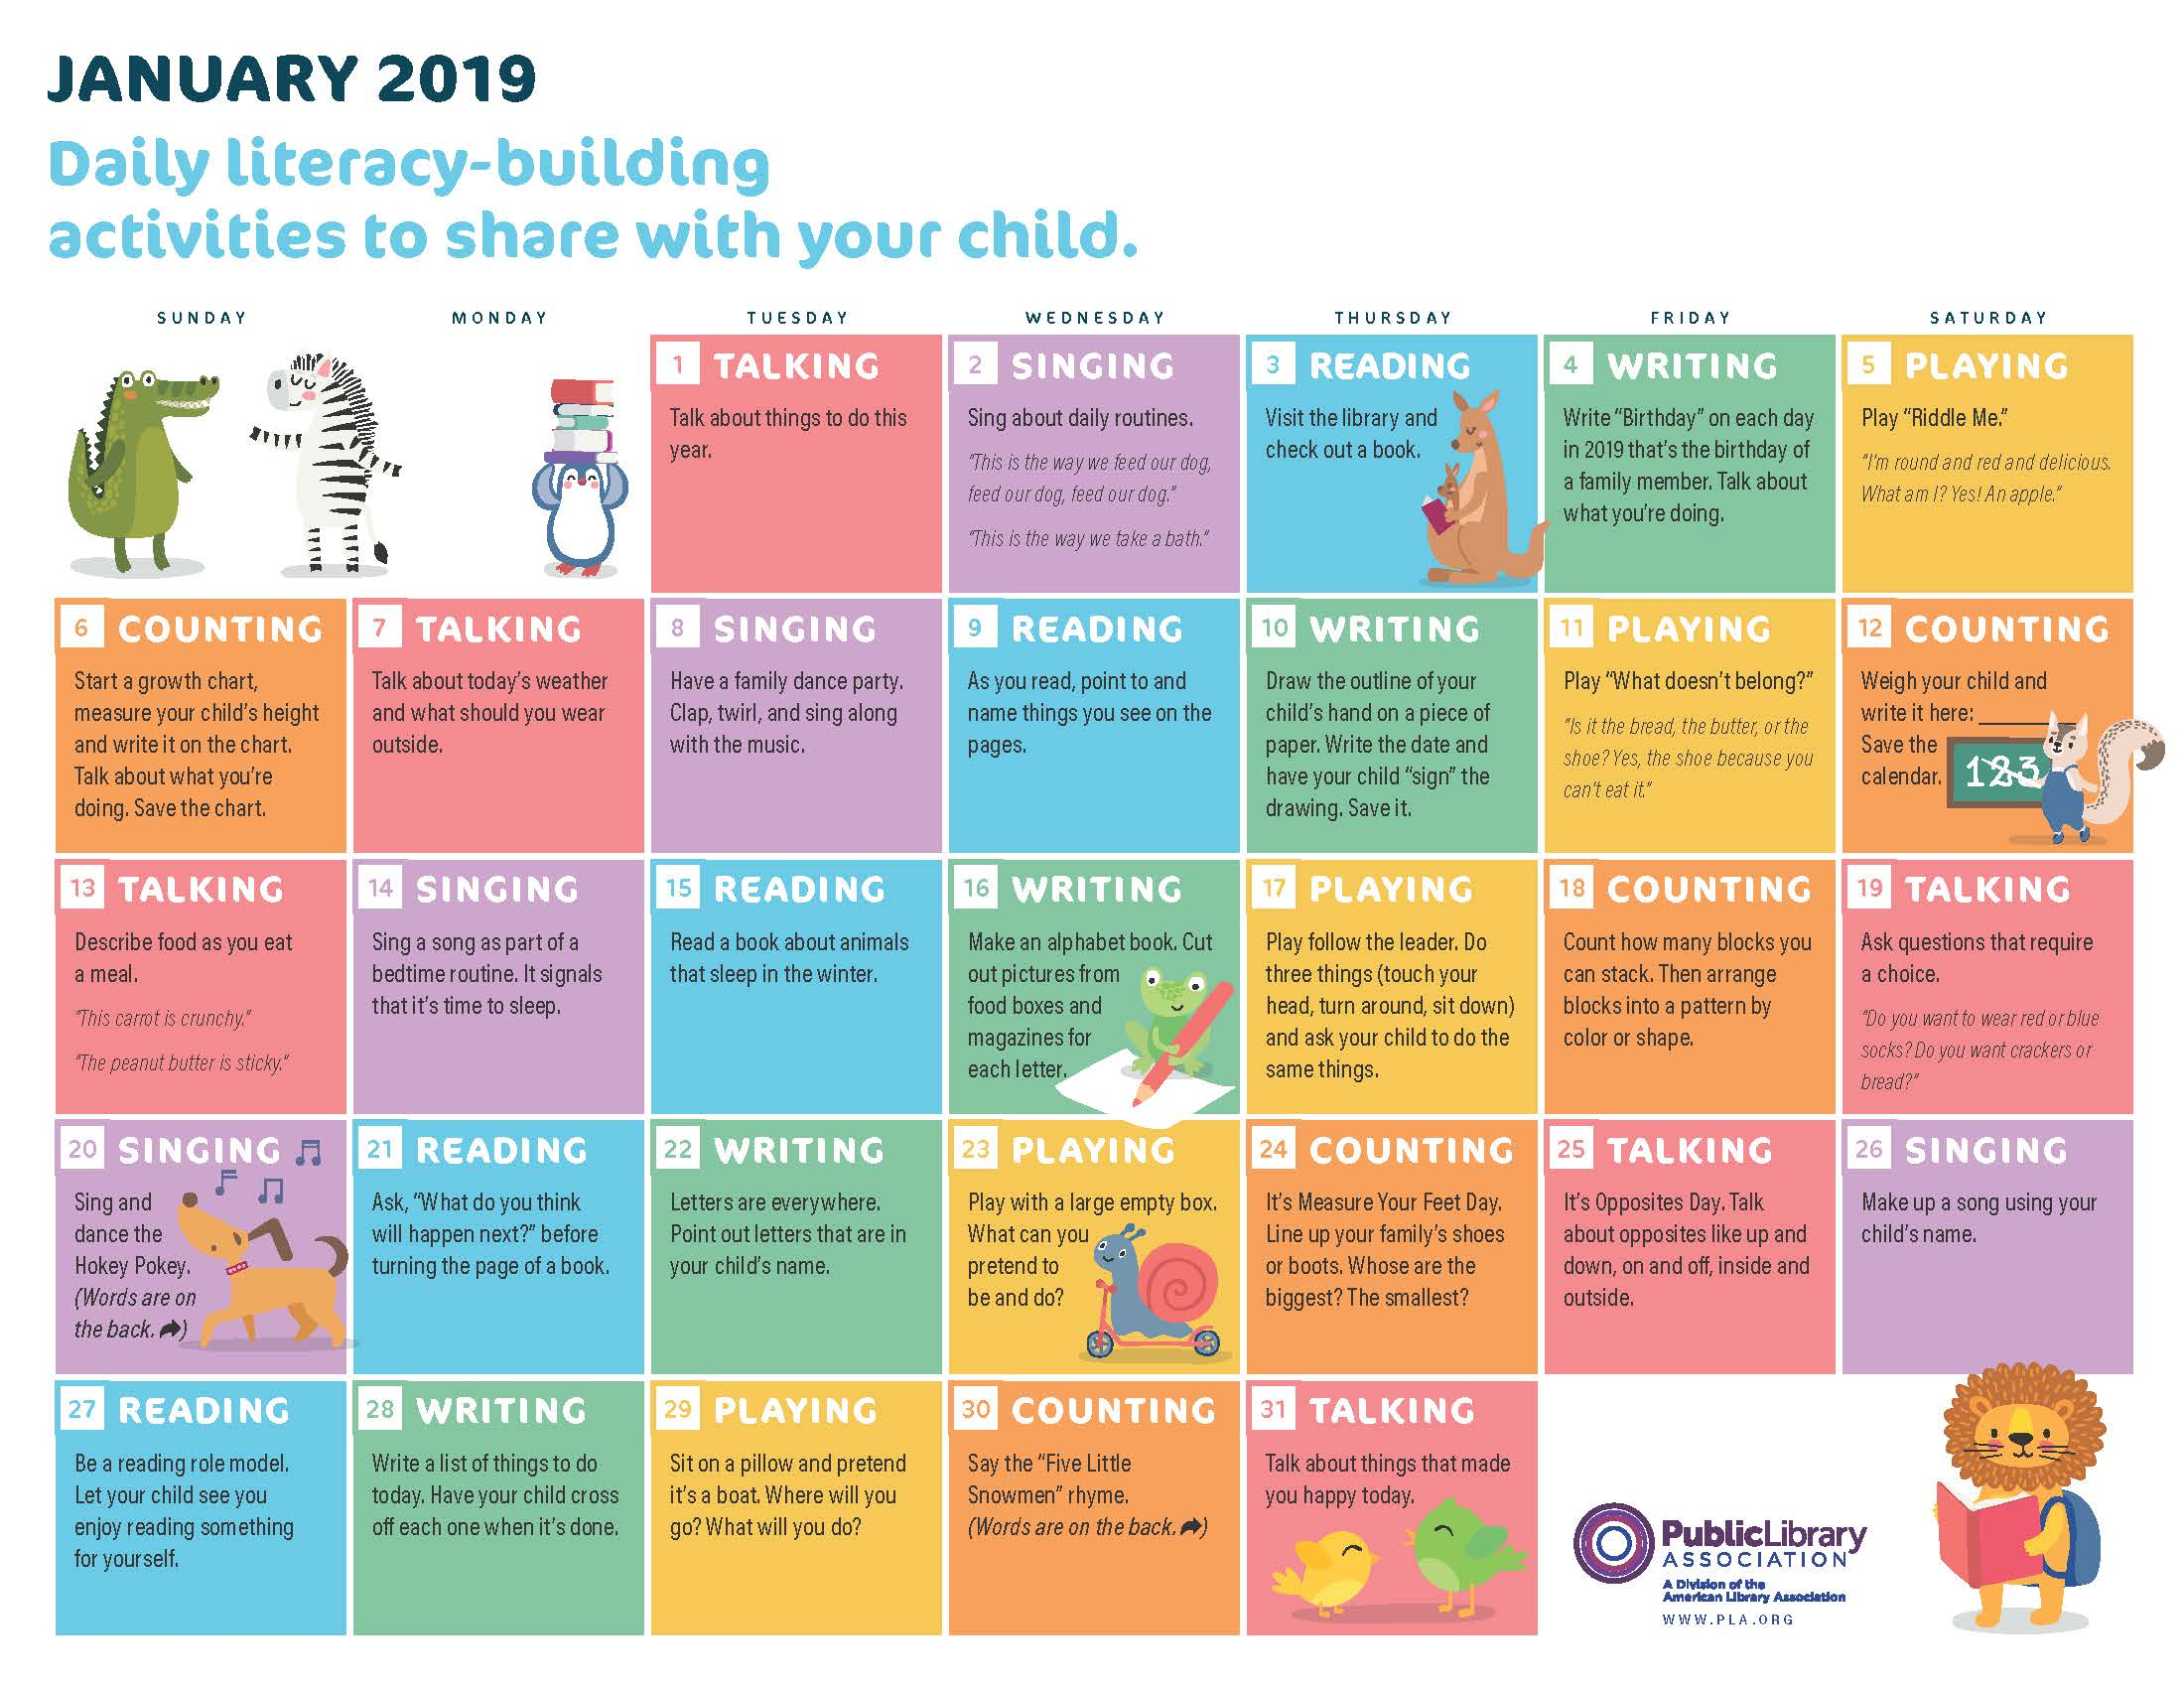 Image for PLA 2019 Early Literacy Activities Calendar—PDF download